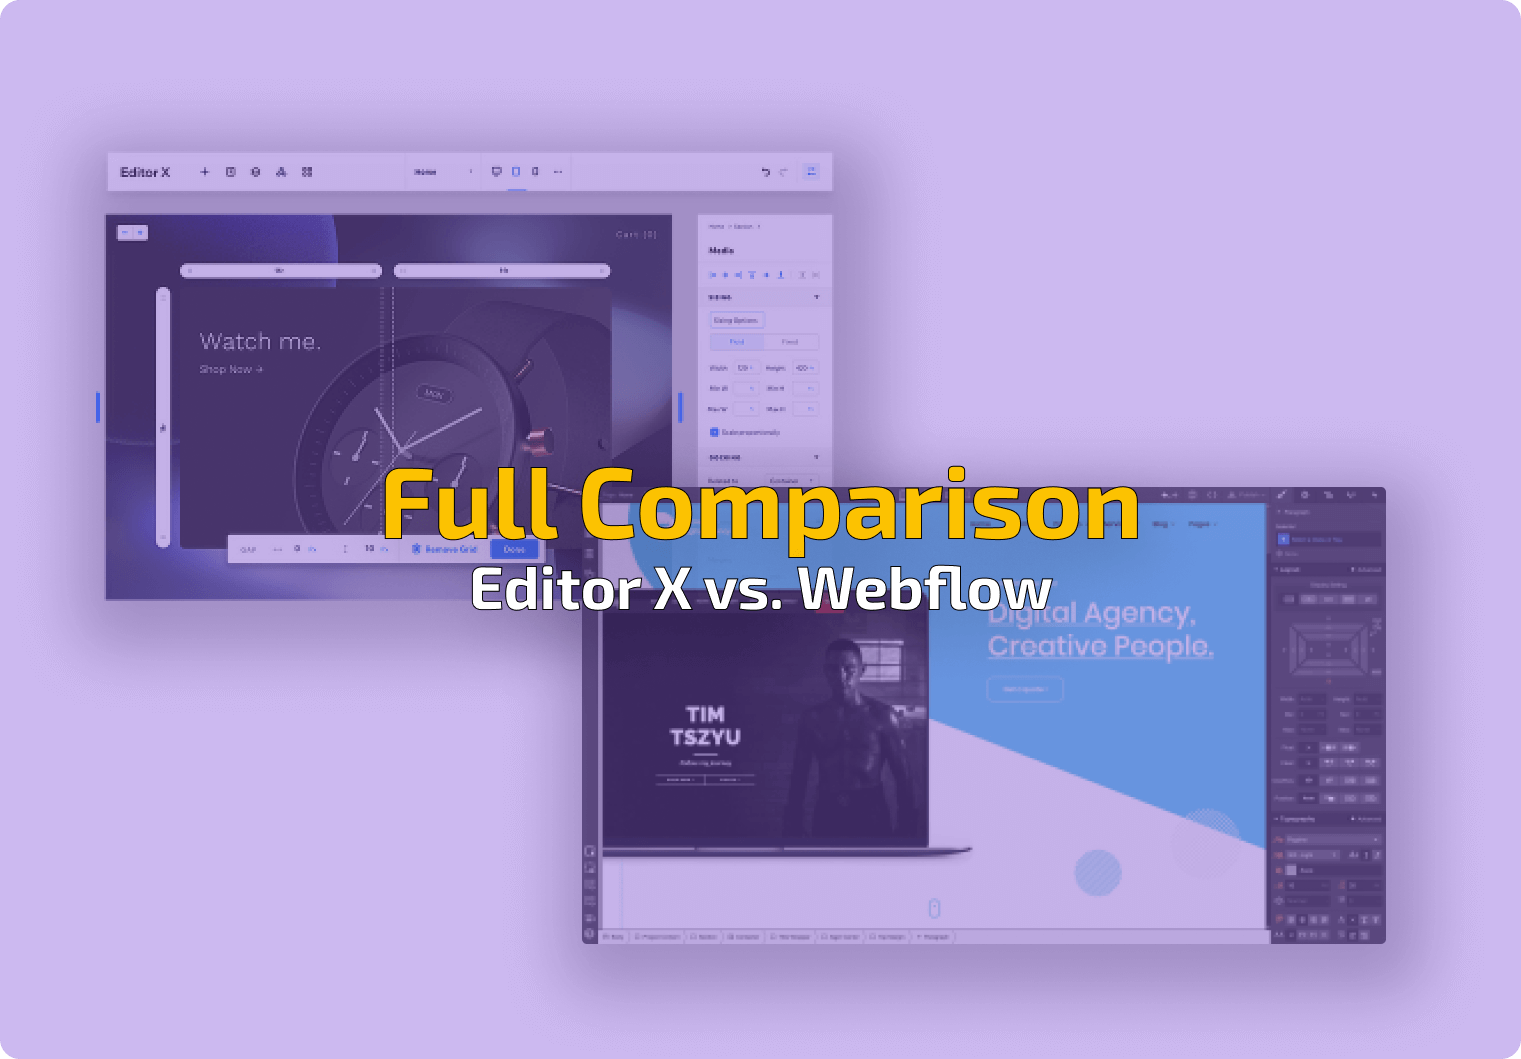 Webflow-provide-designer-to-customize-element-with-plenty-options-to-adjust-and-With-Editor-X-user-can-design-with-drag-and-drop-element